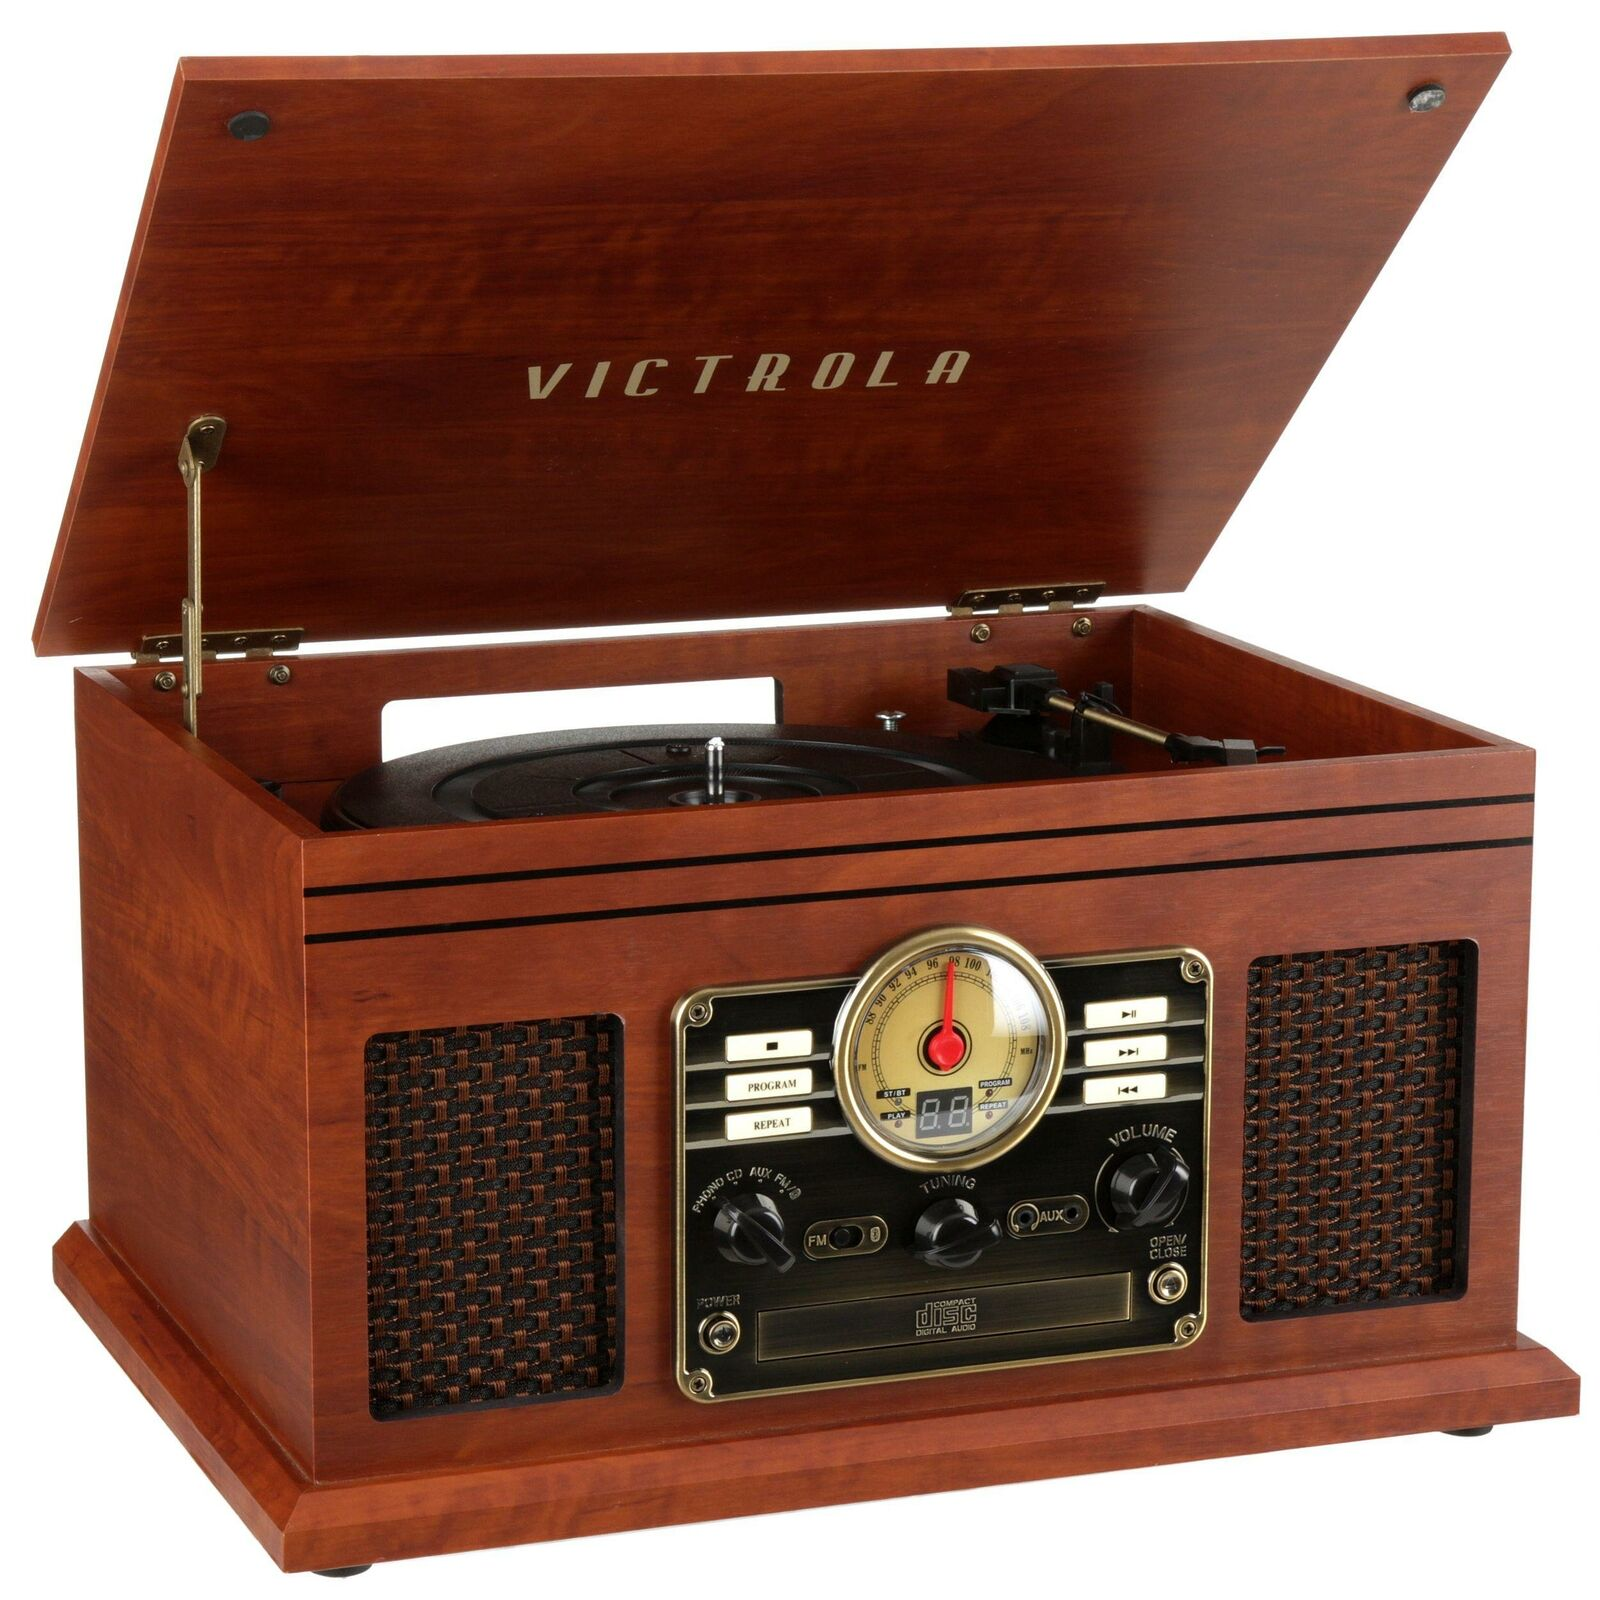 Premium Vinyl Record Player 3-Speed Turntable Bluetooth Retro - Morealis